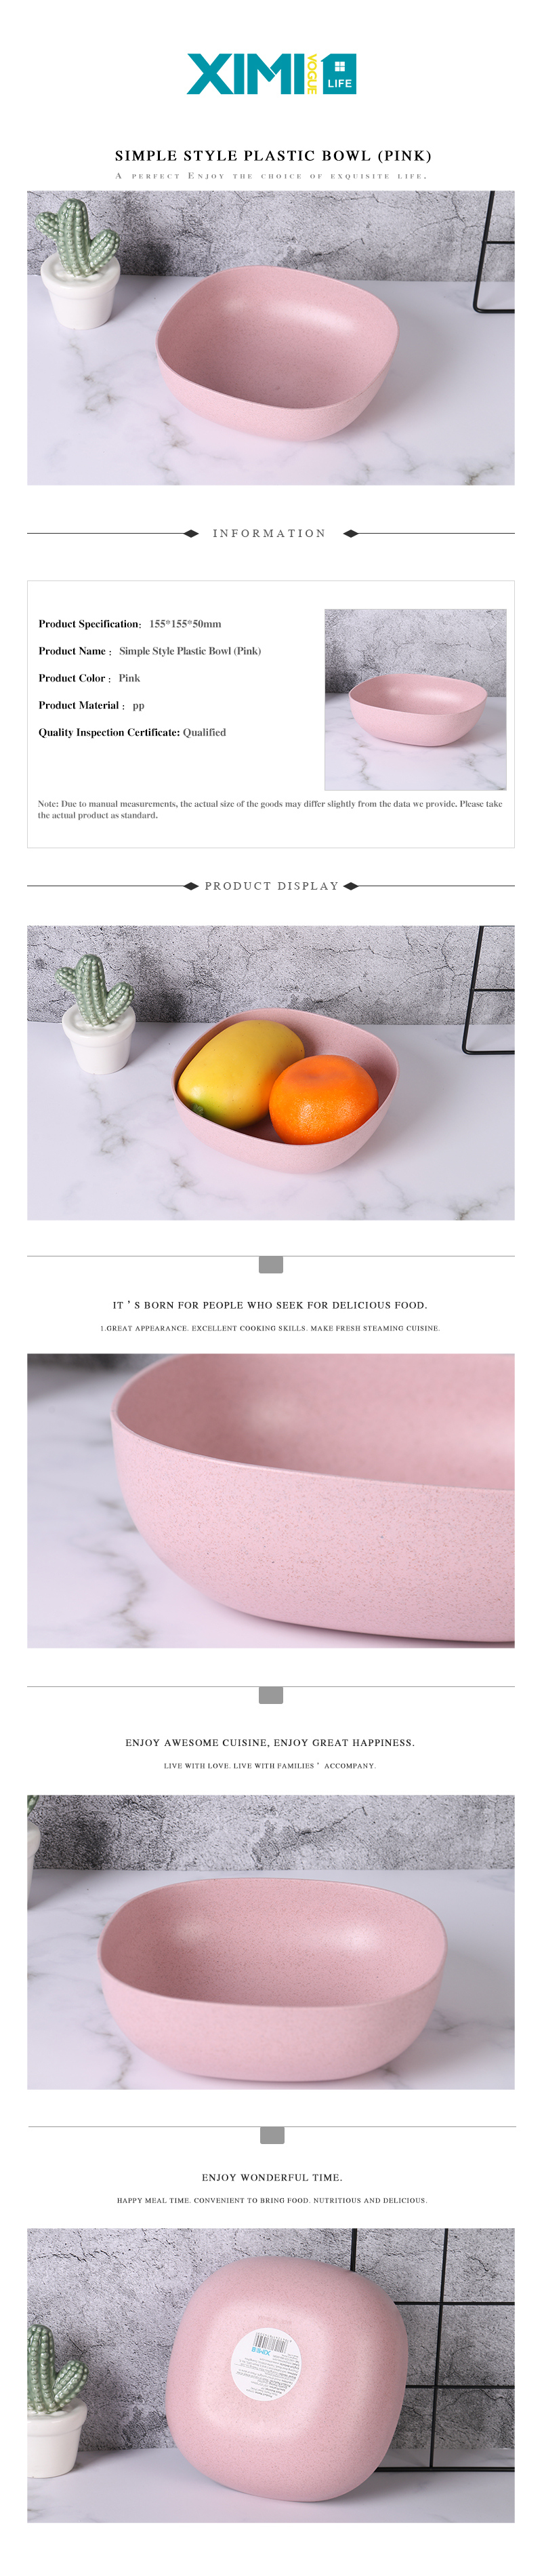 Simple Style Plastic Bowl (Pink)